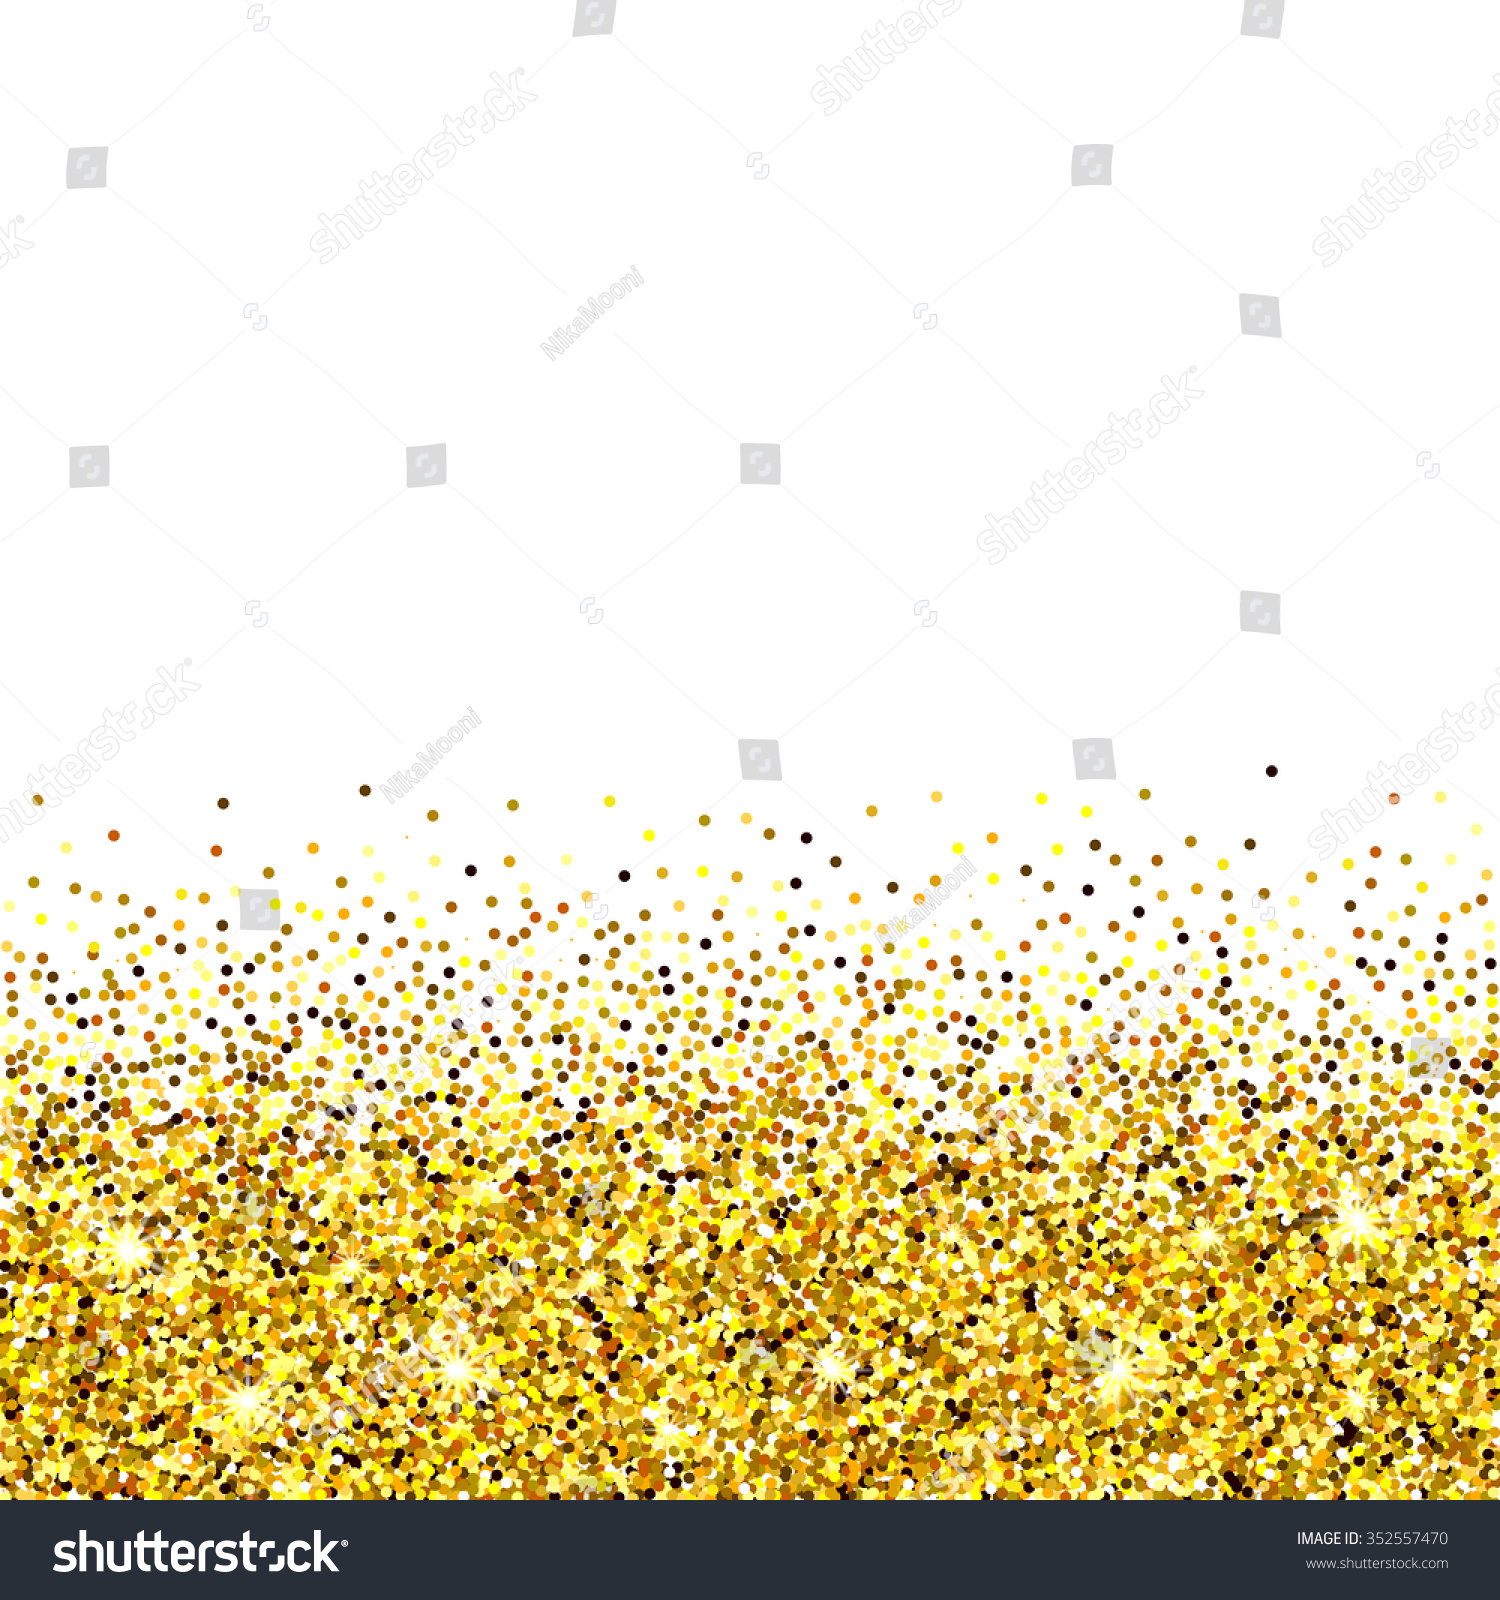 gold glitter background gold sparkles on stock vector 352557470 gold glitter background gold sparkles on white background creative invitation for party holiday